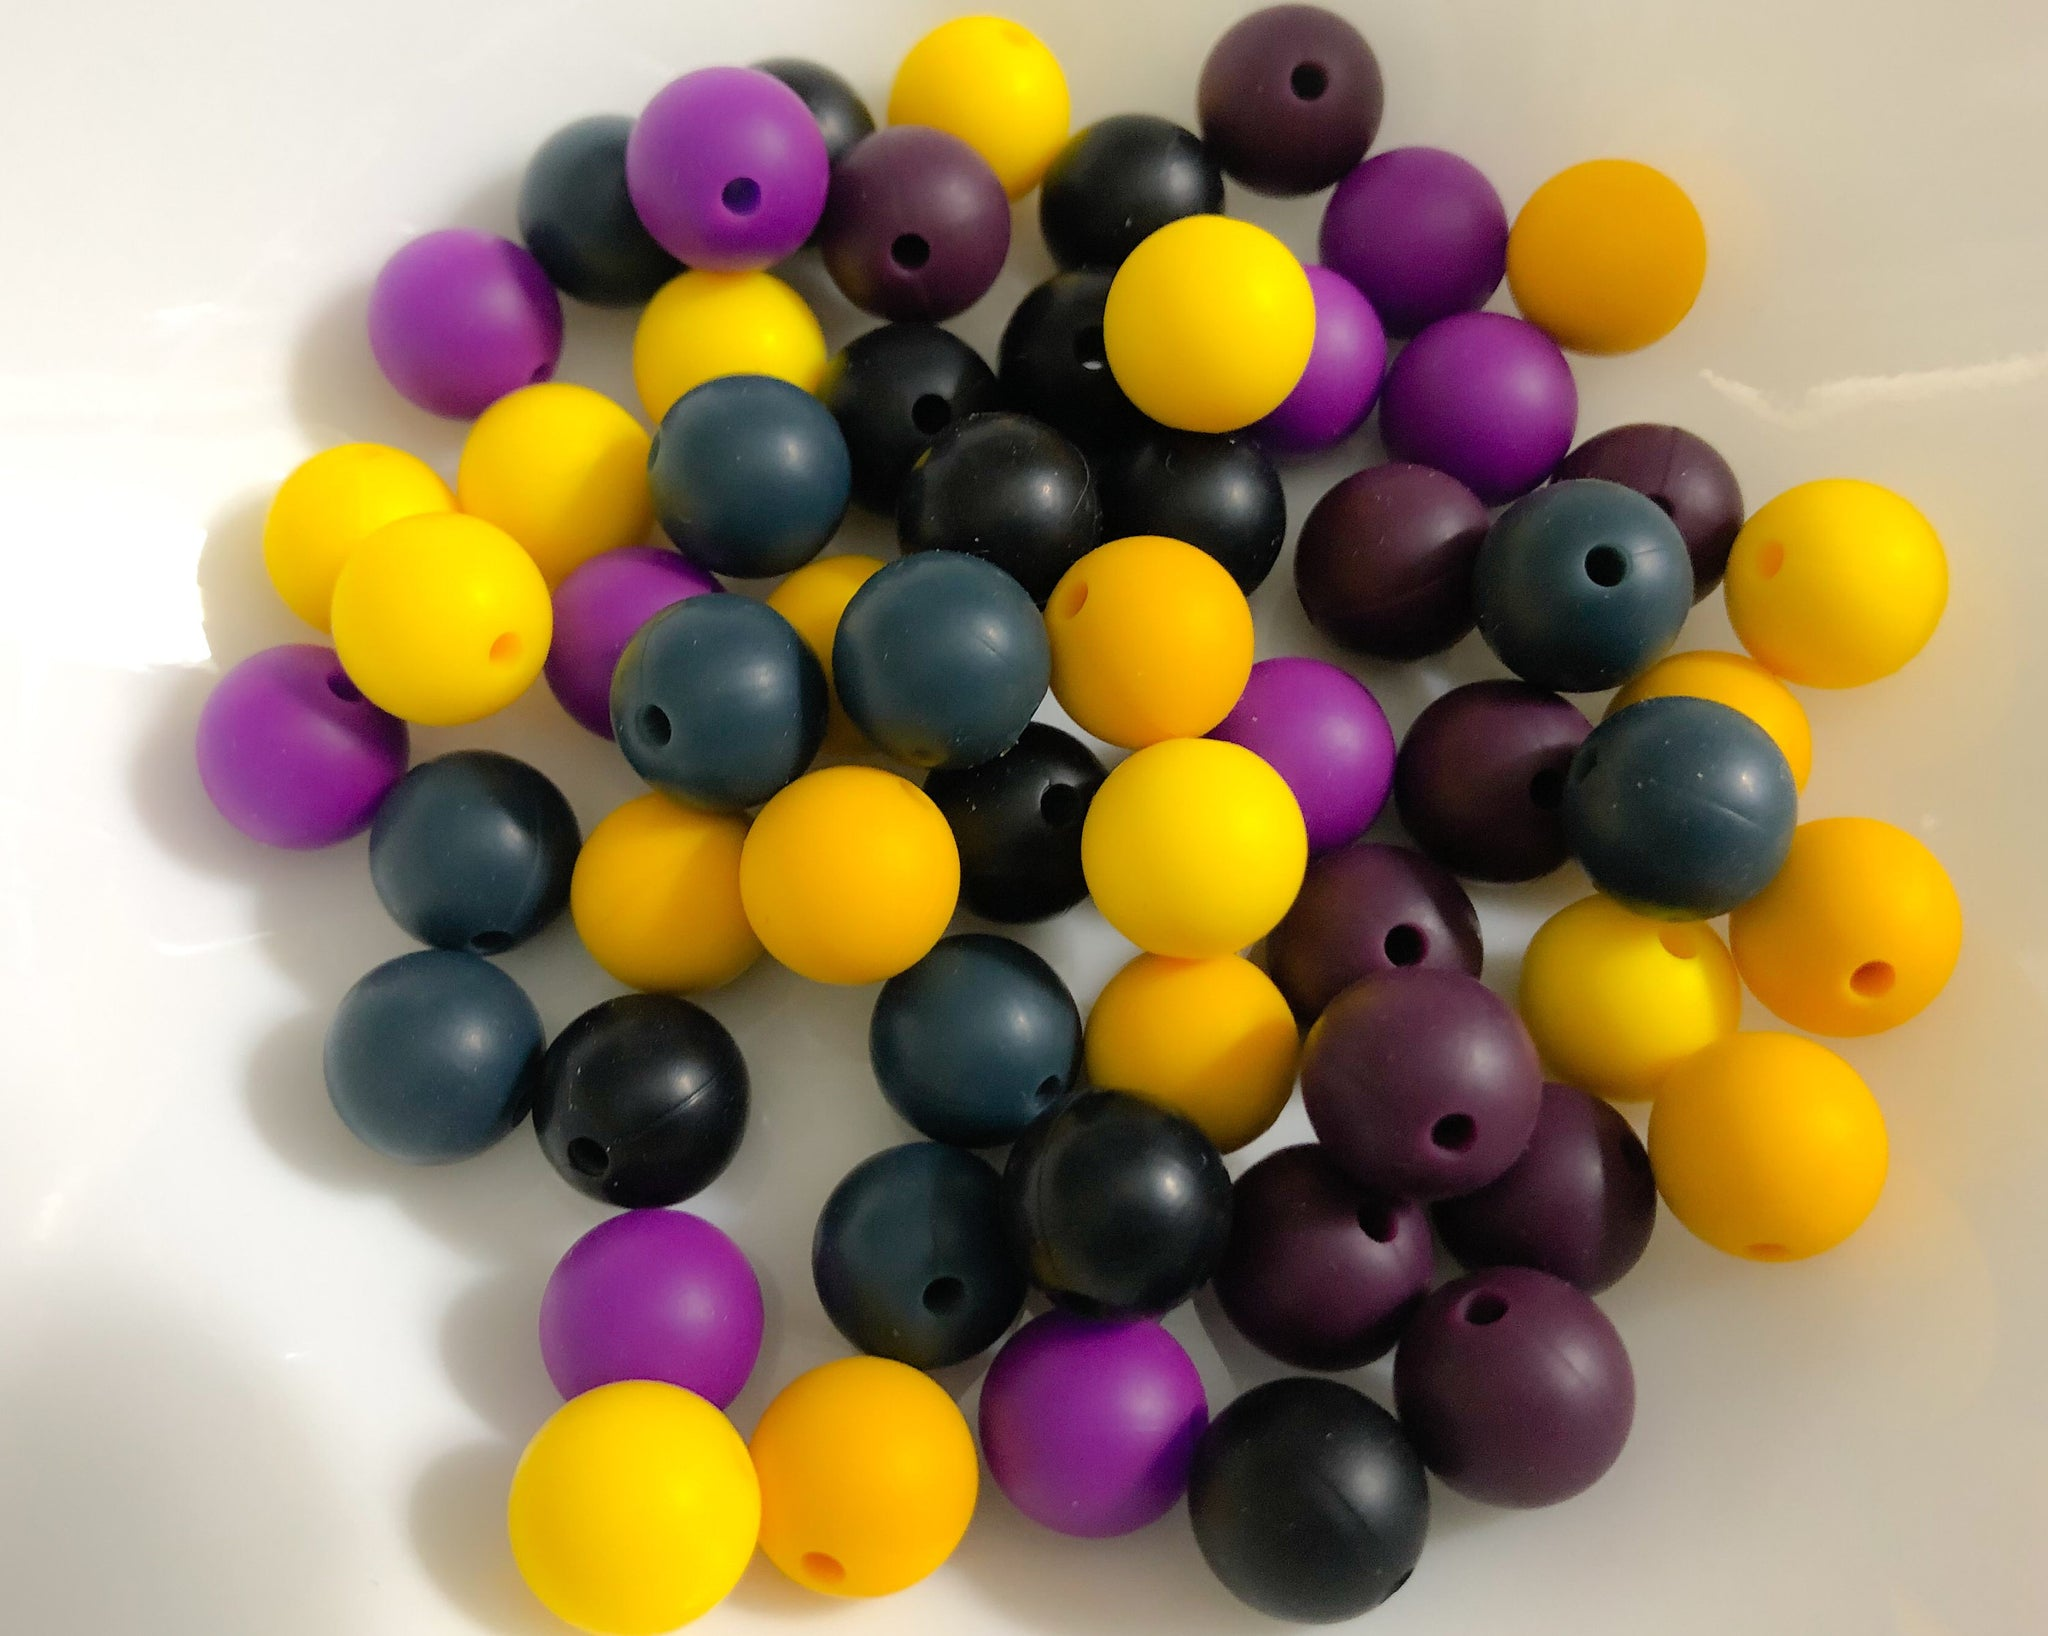 60 Bulk Silicone Teething Beads - Farmhouse Door - Sunflower, Pencil, Plum ,Violet, Black, Prussian - Bulk Silicone Beads Wholesale